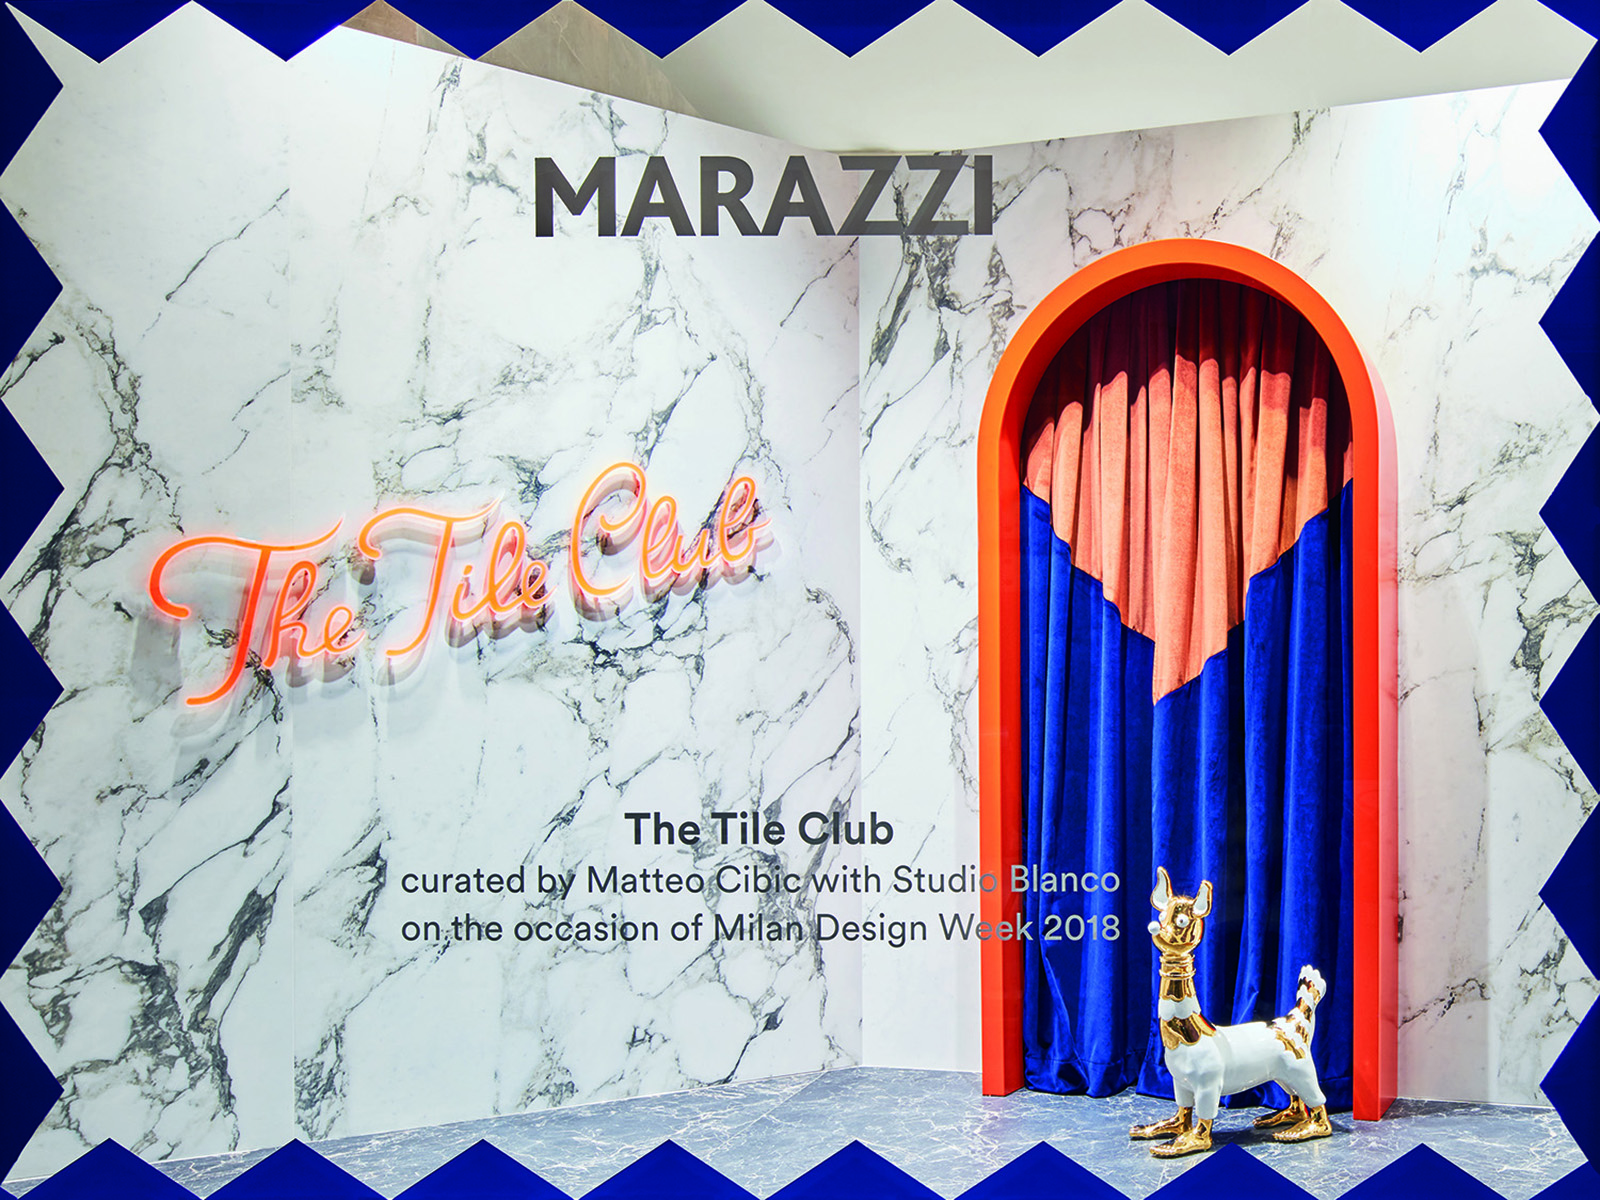 Copy of The Tile Club - Marazzi